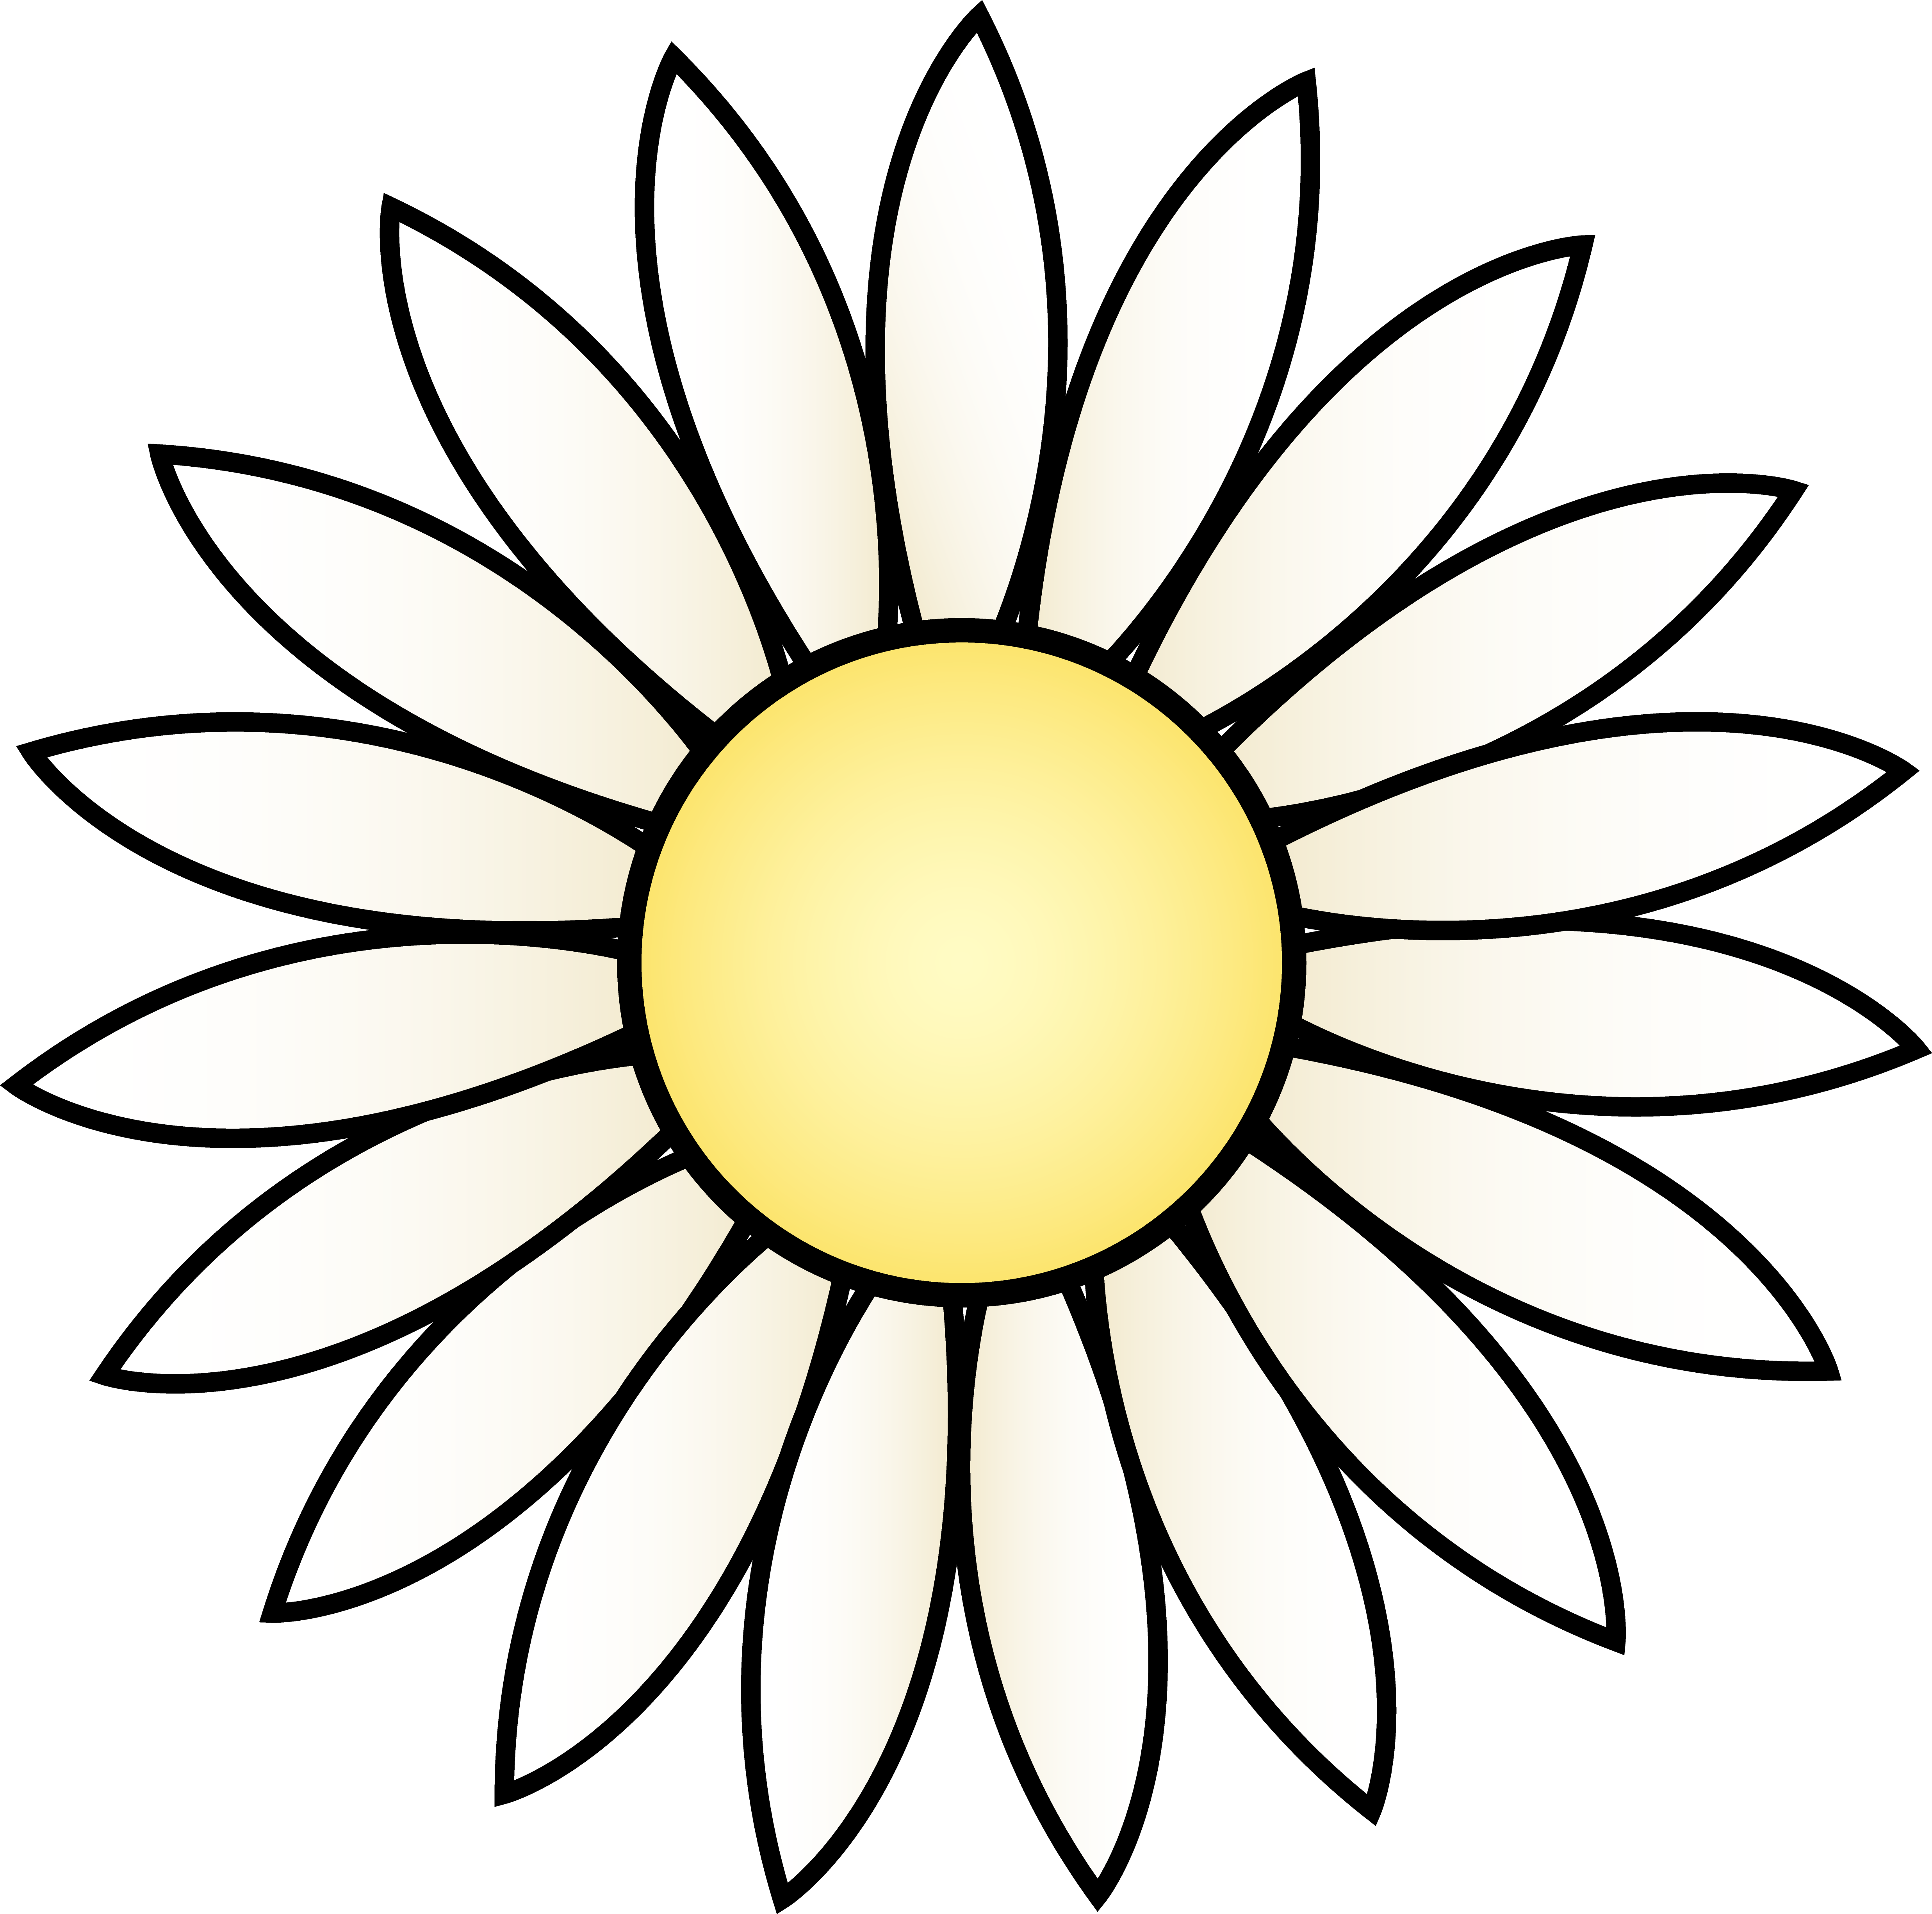 Sunflower Drawing Template at GetDrawings.com | Free for personal ...